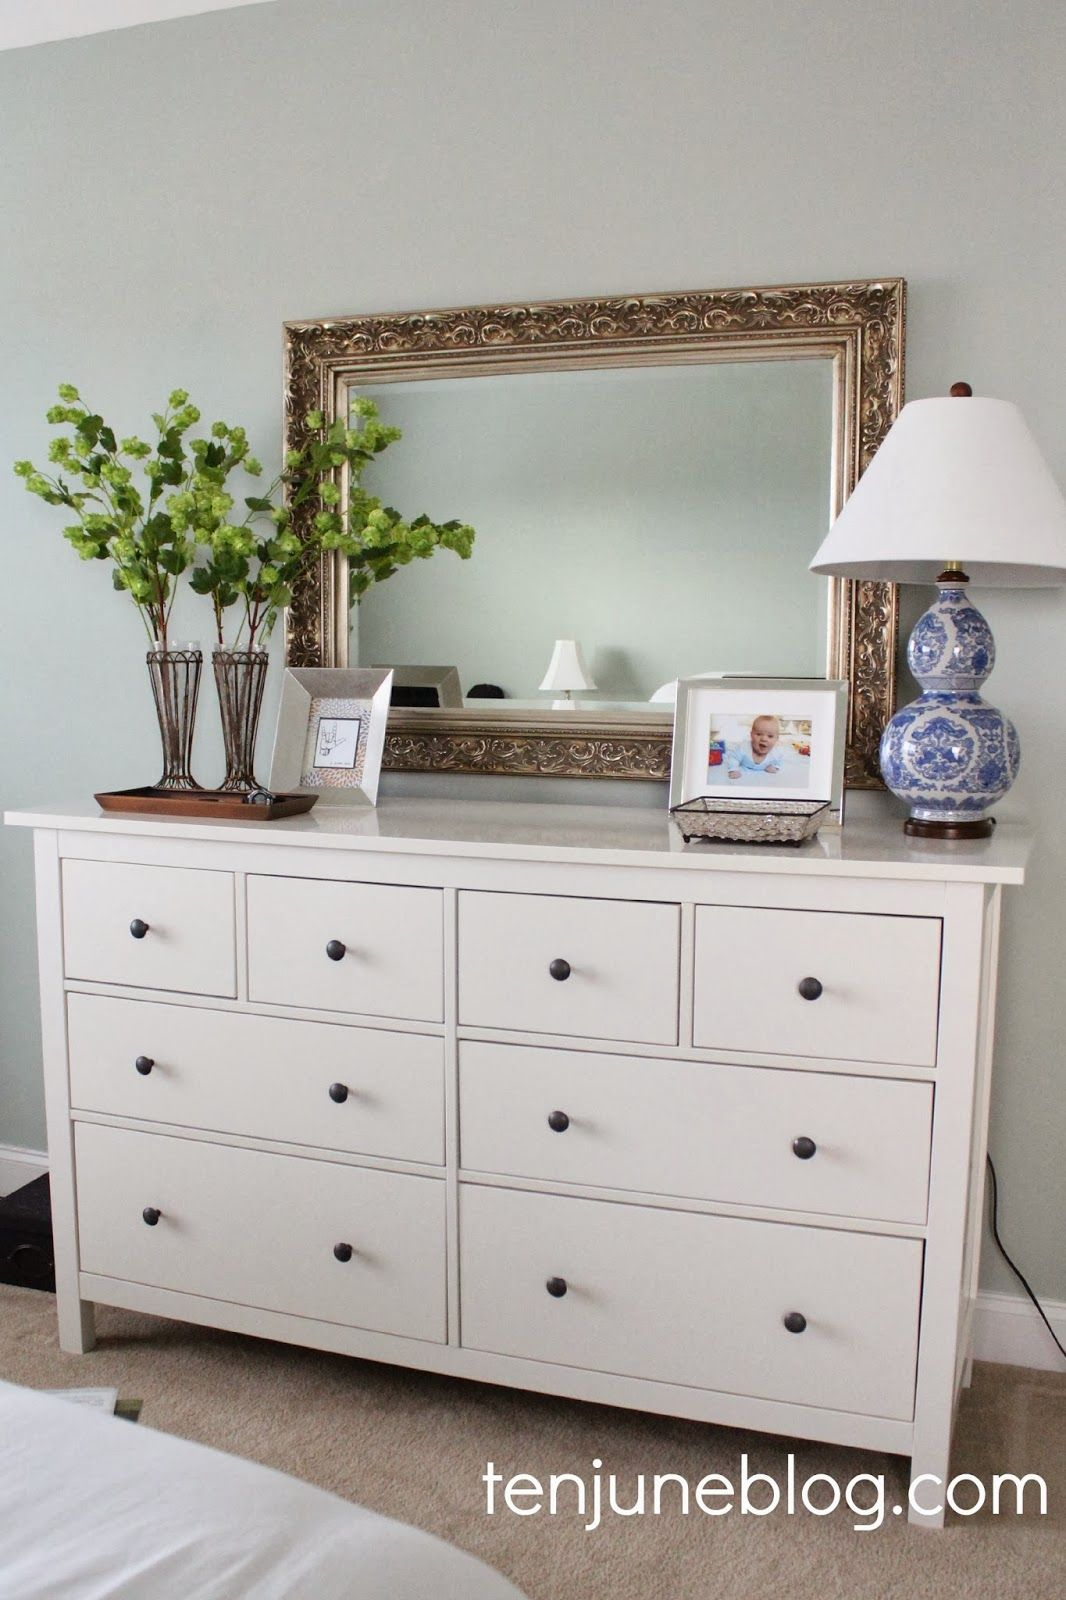 Ten June Master Bedroom Dresser Vignette Dresser Decor Bedroom